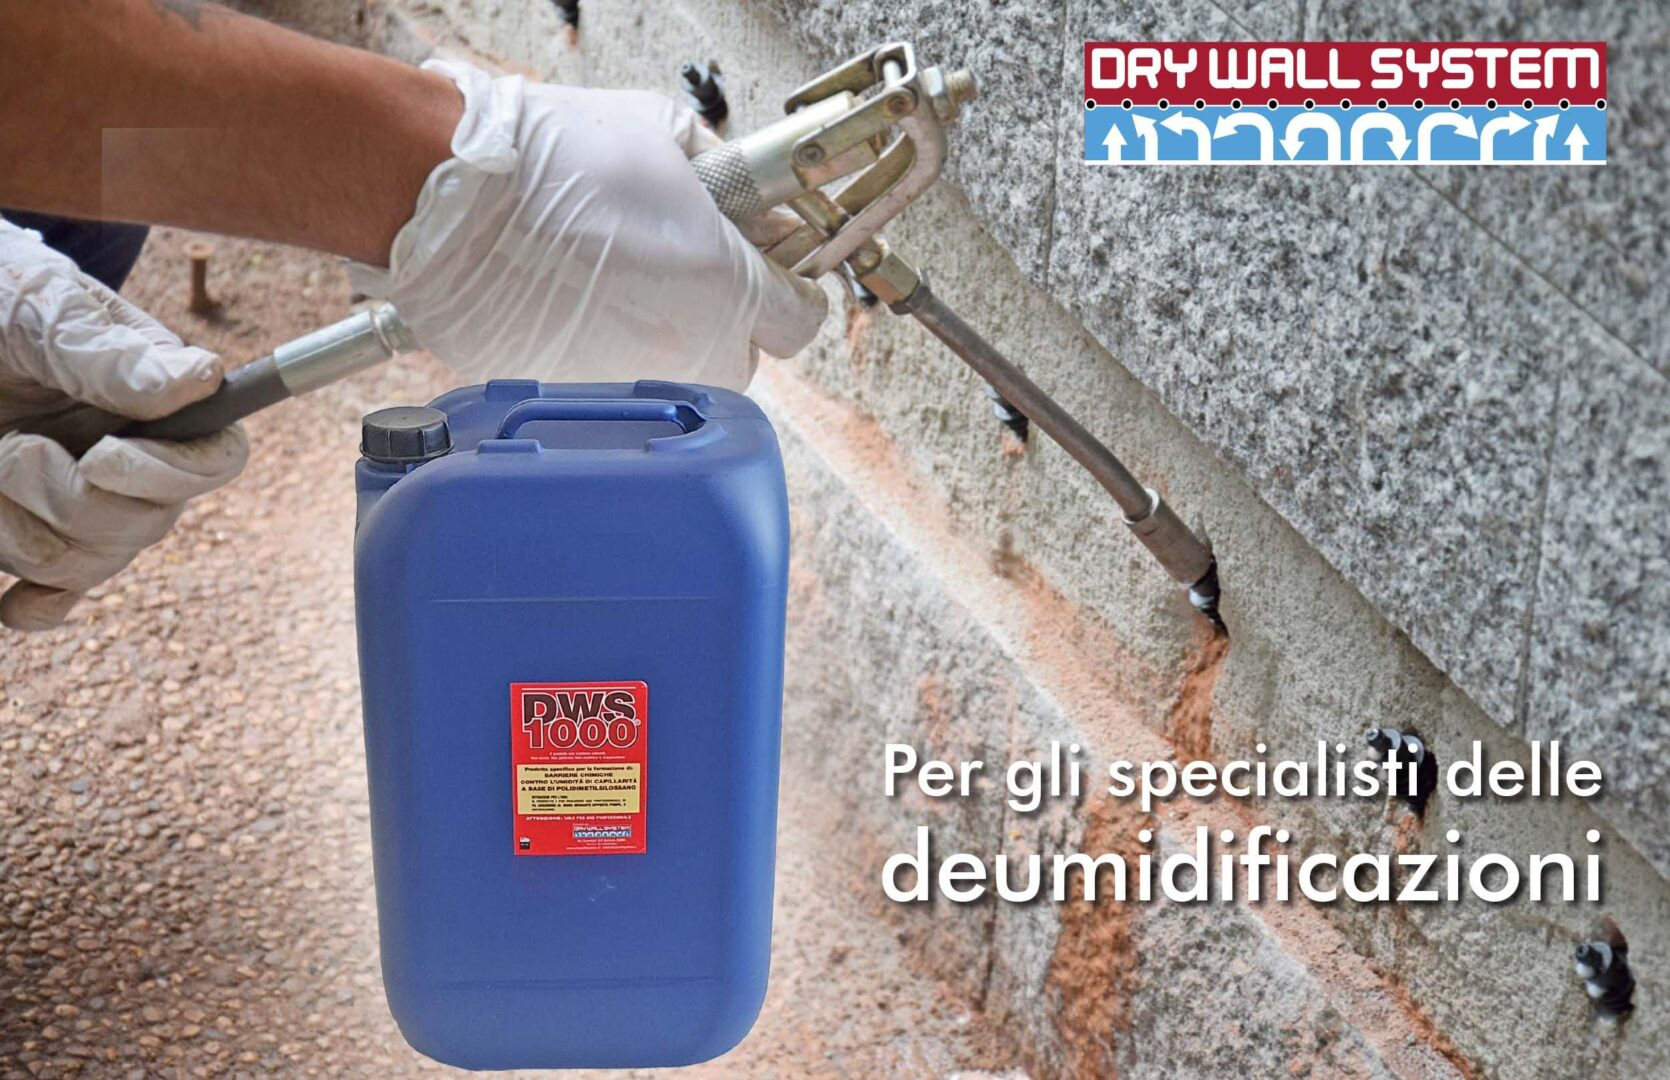 DWS 1000 Dry Wall System